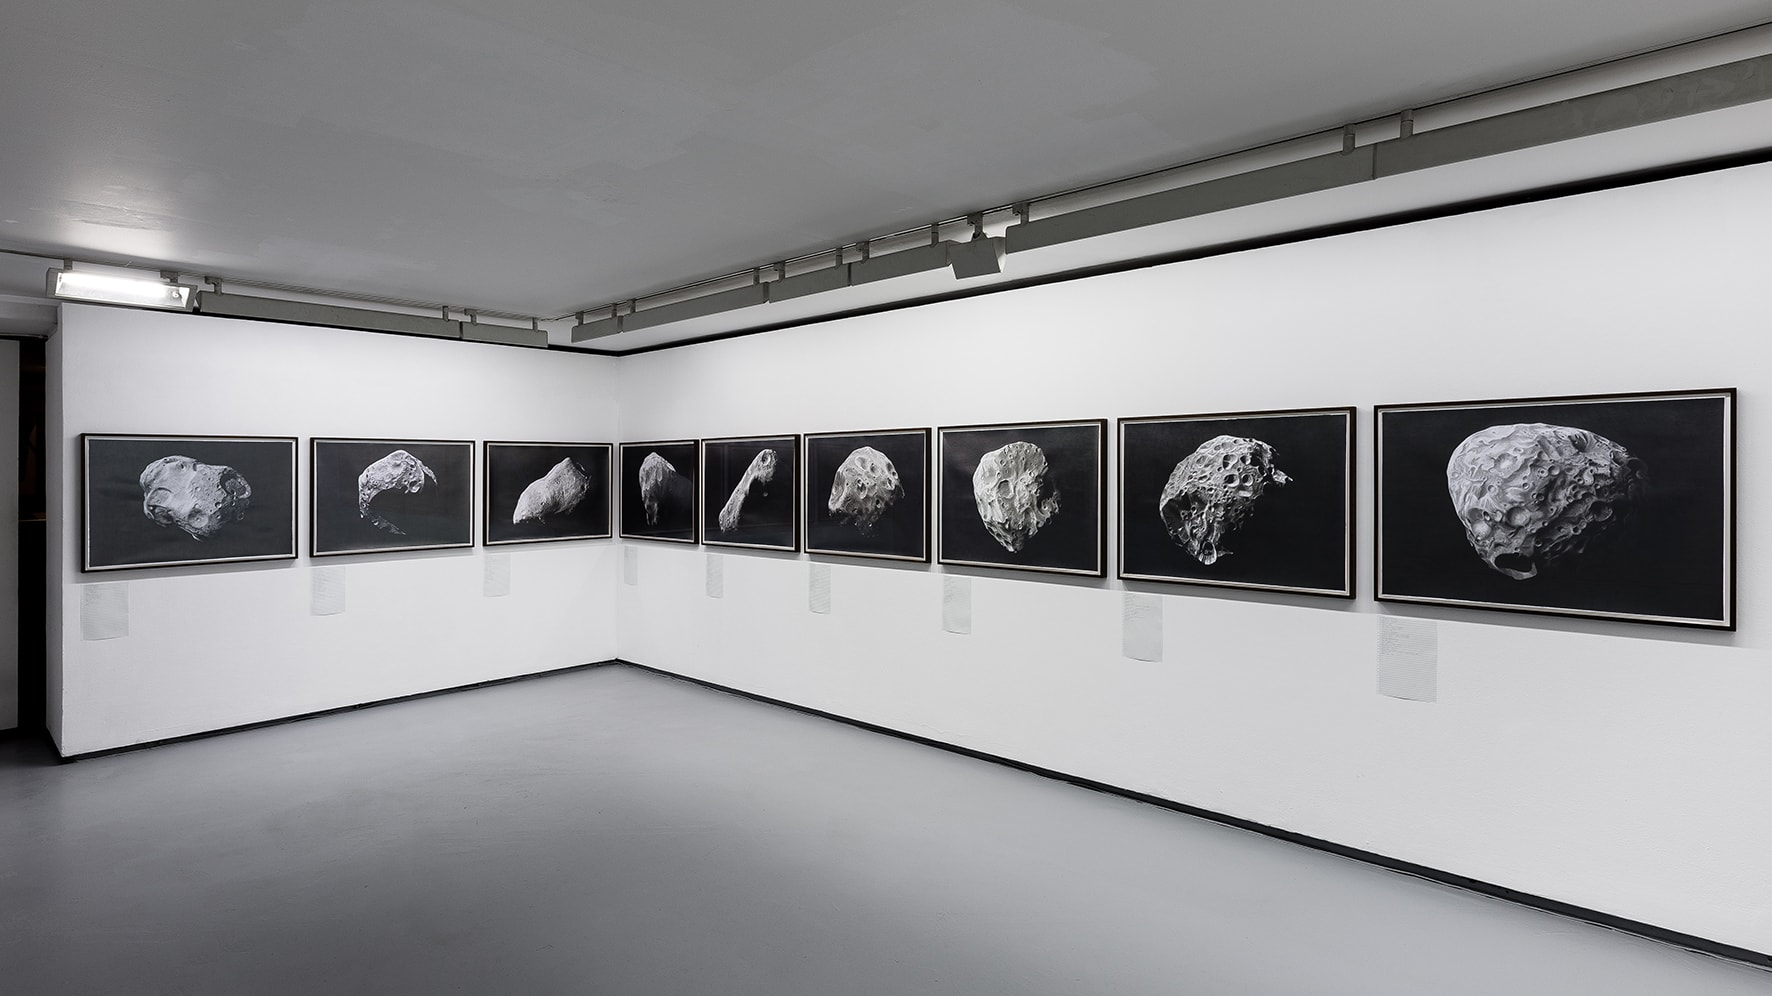 Nicolas Moulin, SCANDALE PROJECT, artist, contemporary artist, emerging artist, art installation, visual art, photography, photographer, art exhibition, exhibition view, creation, artist, contemporary art, Interview, groupshow, group show, art scandal project, scandaleproject,